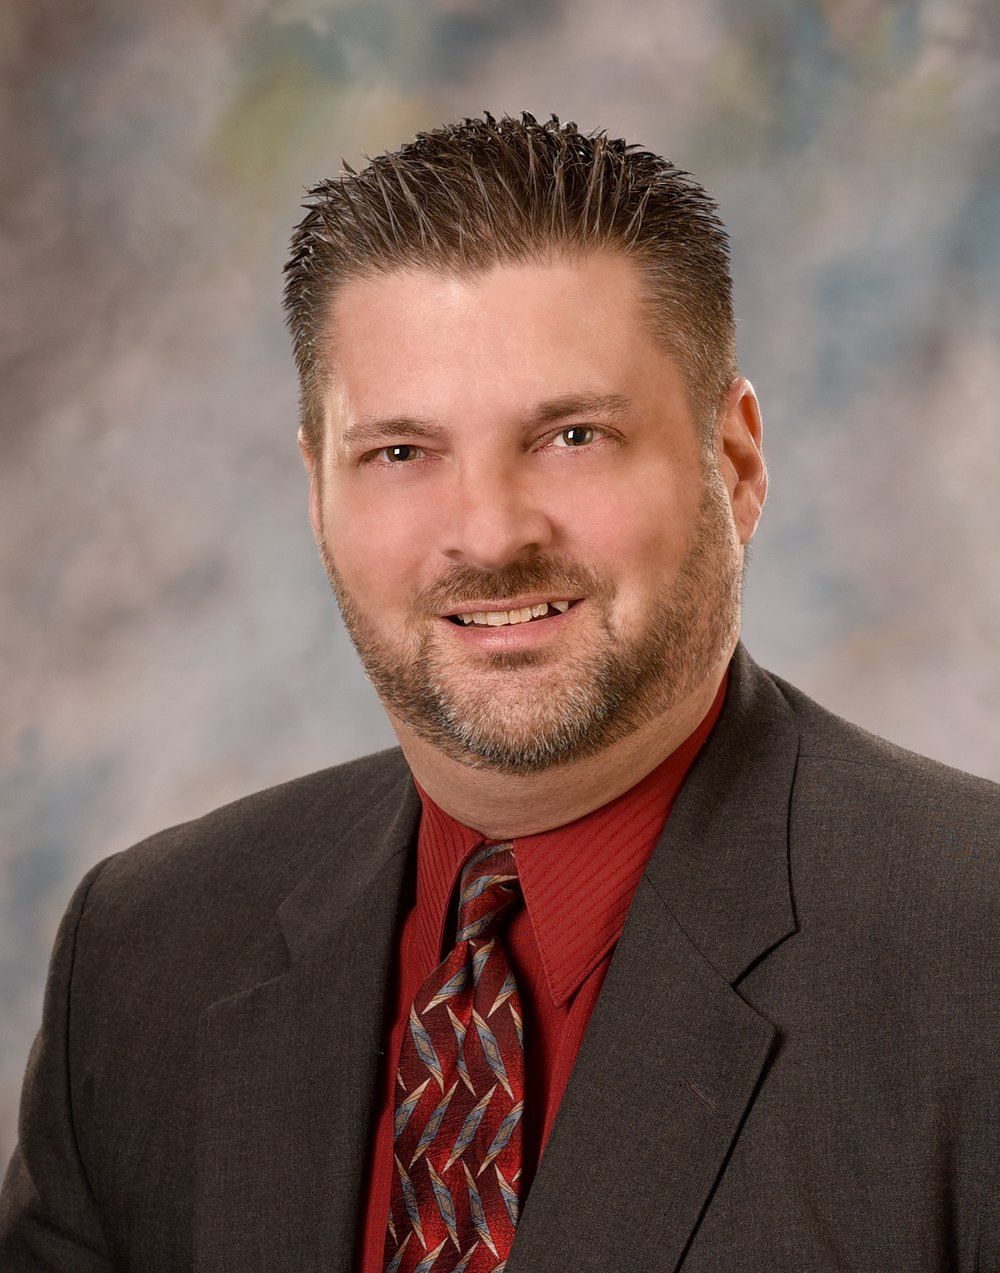 ROB DAWSON, PRMG TALLMADGE BRANCH MANAGER